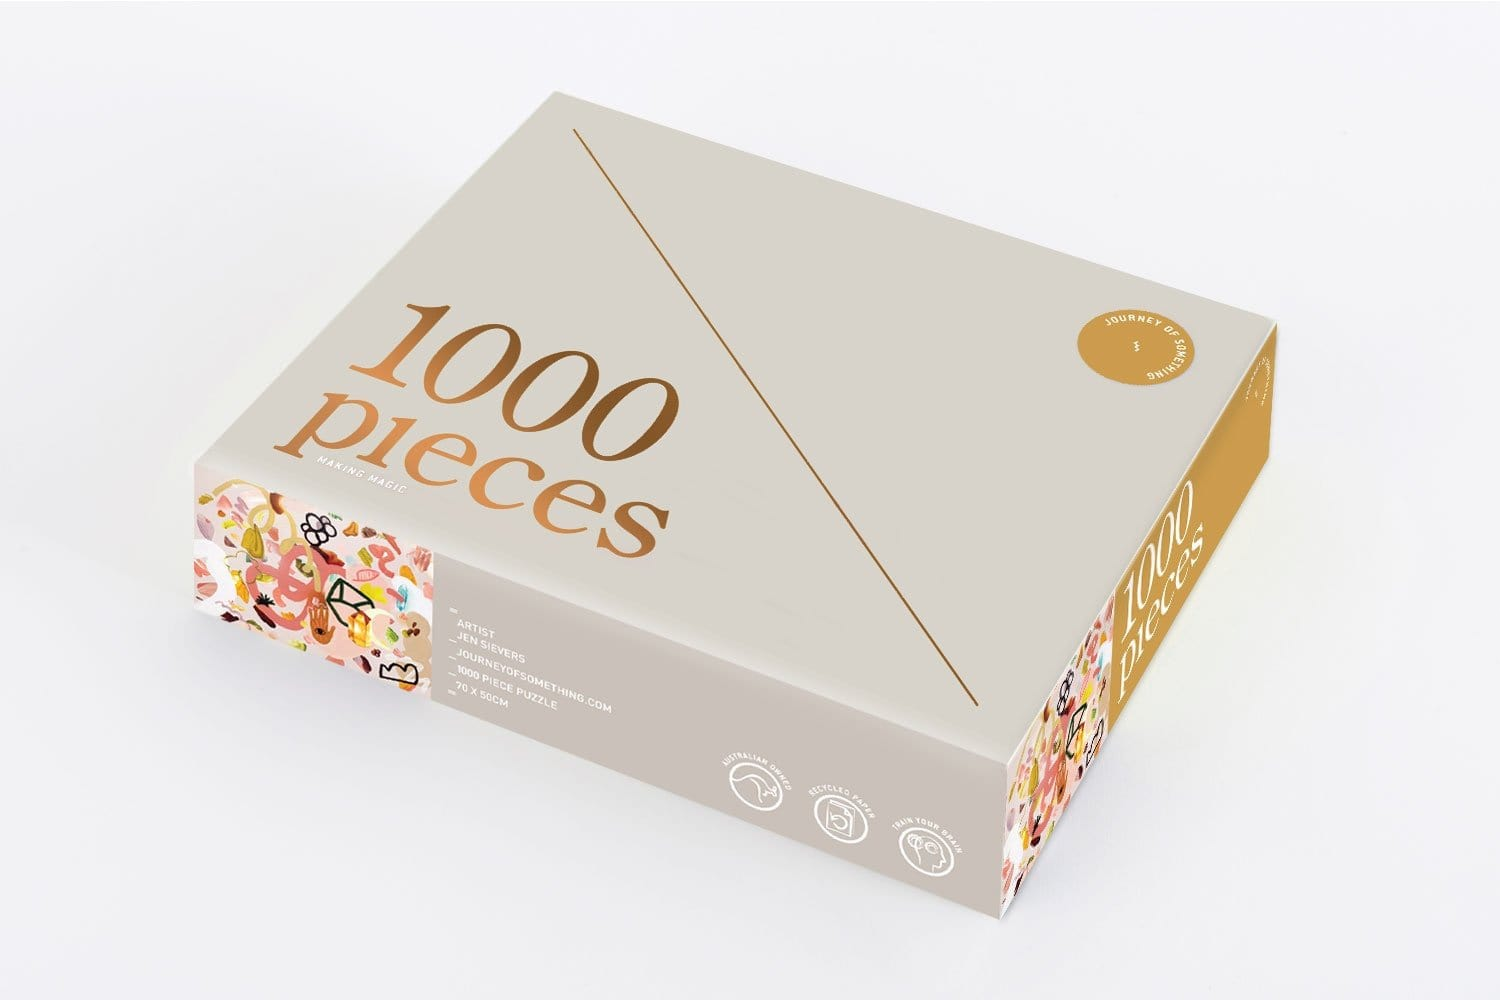 1000 Piece Puzzle - Making Magic by Journey of Something | Shop Puzzles & Games | Greenhouse Interiors